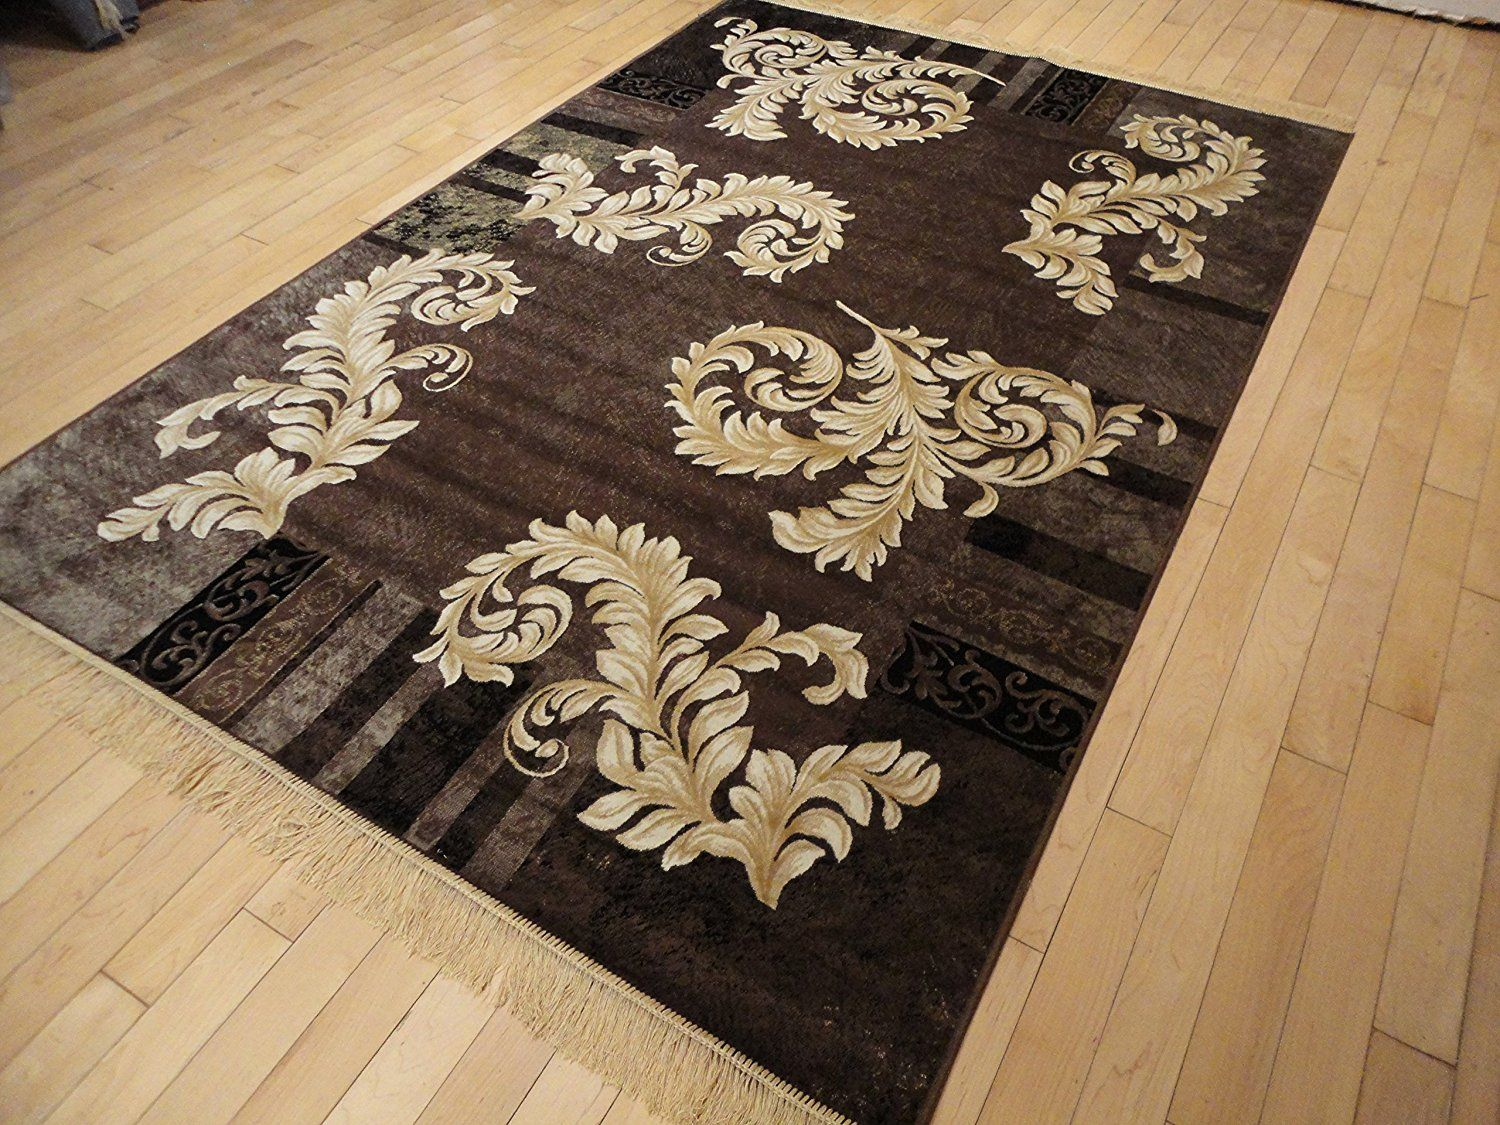 Silk Brown Ice Area Rugs 5x8 Modern Rug Dining Room Black Cream Gold